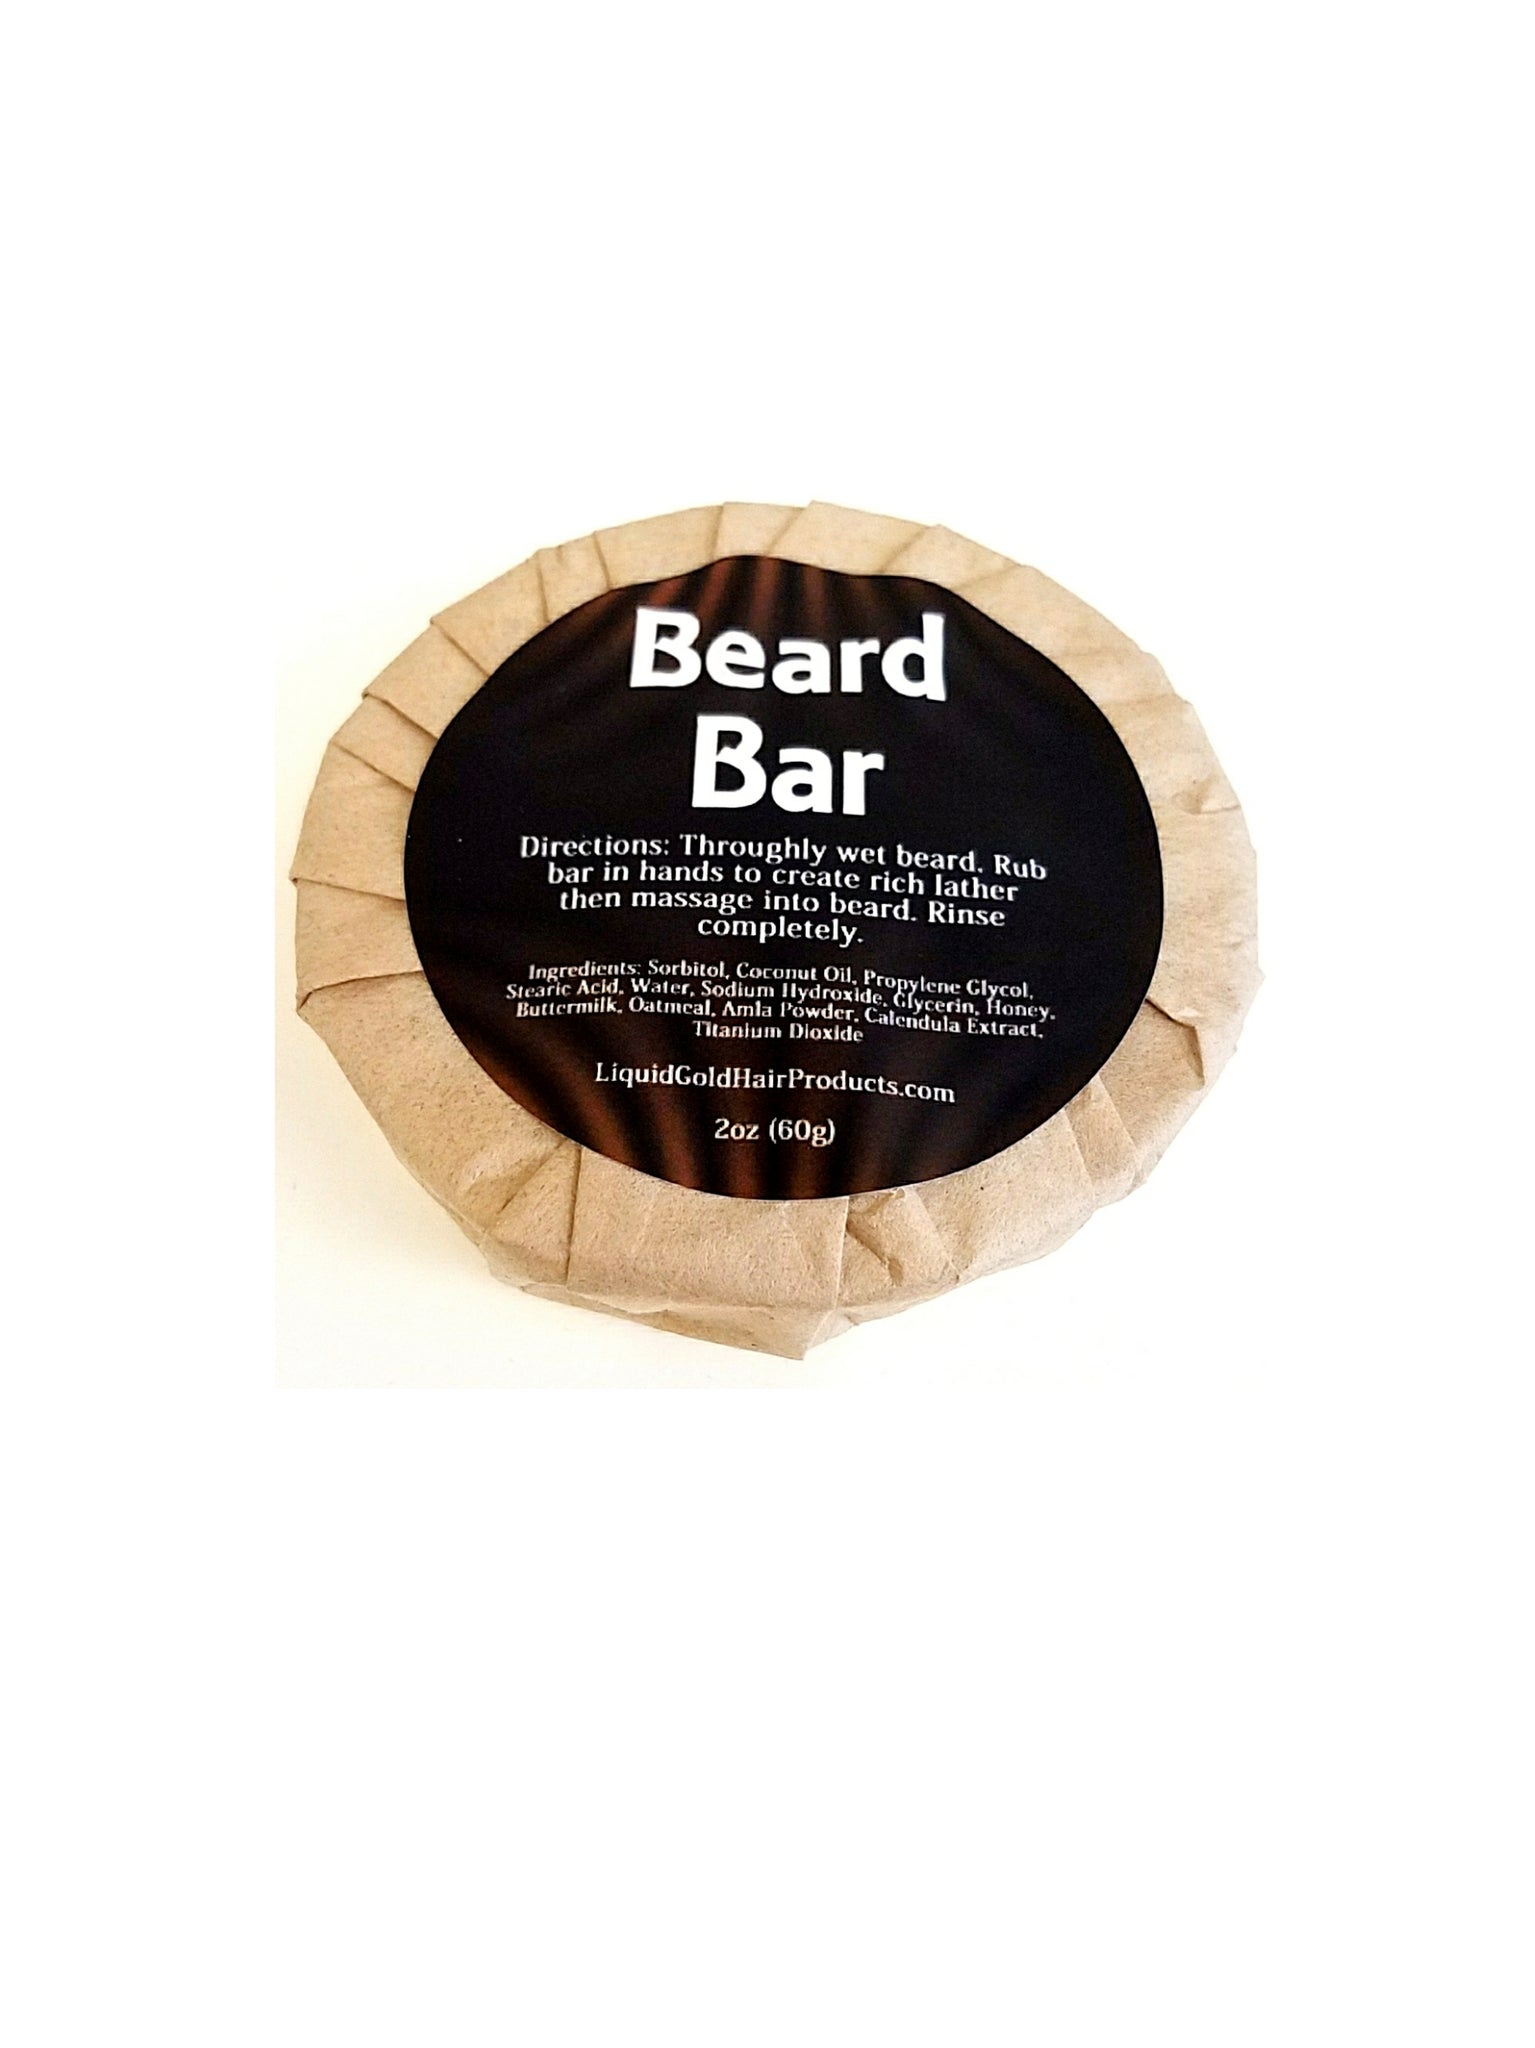 Beard Bar (Beard Shampoo)